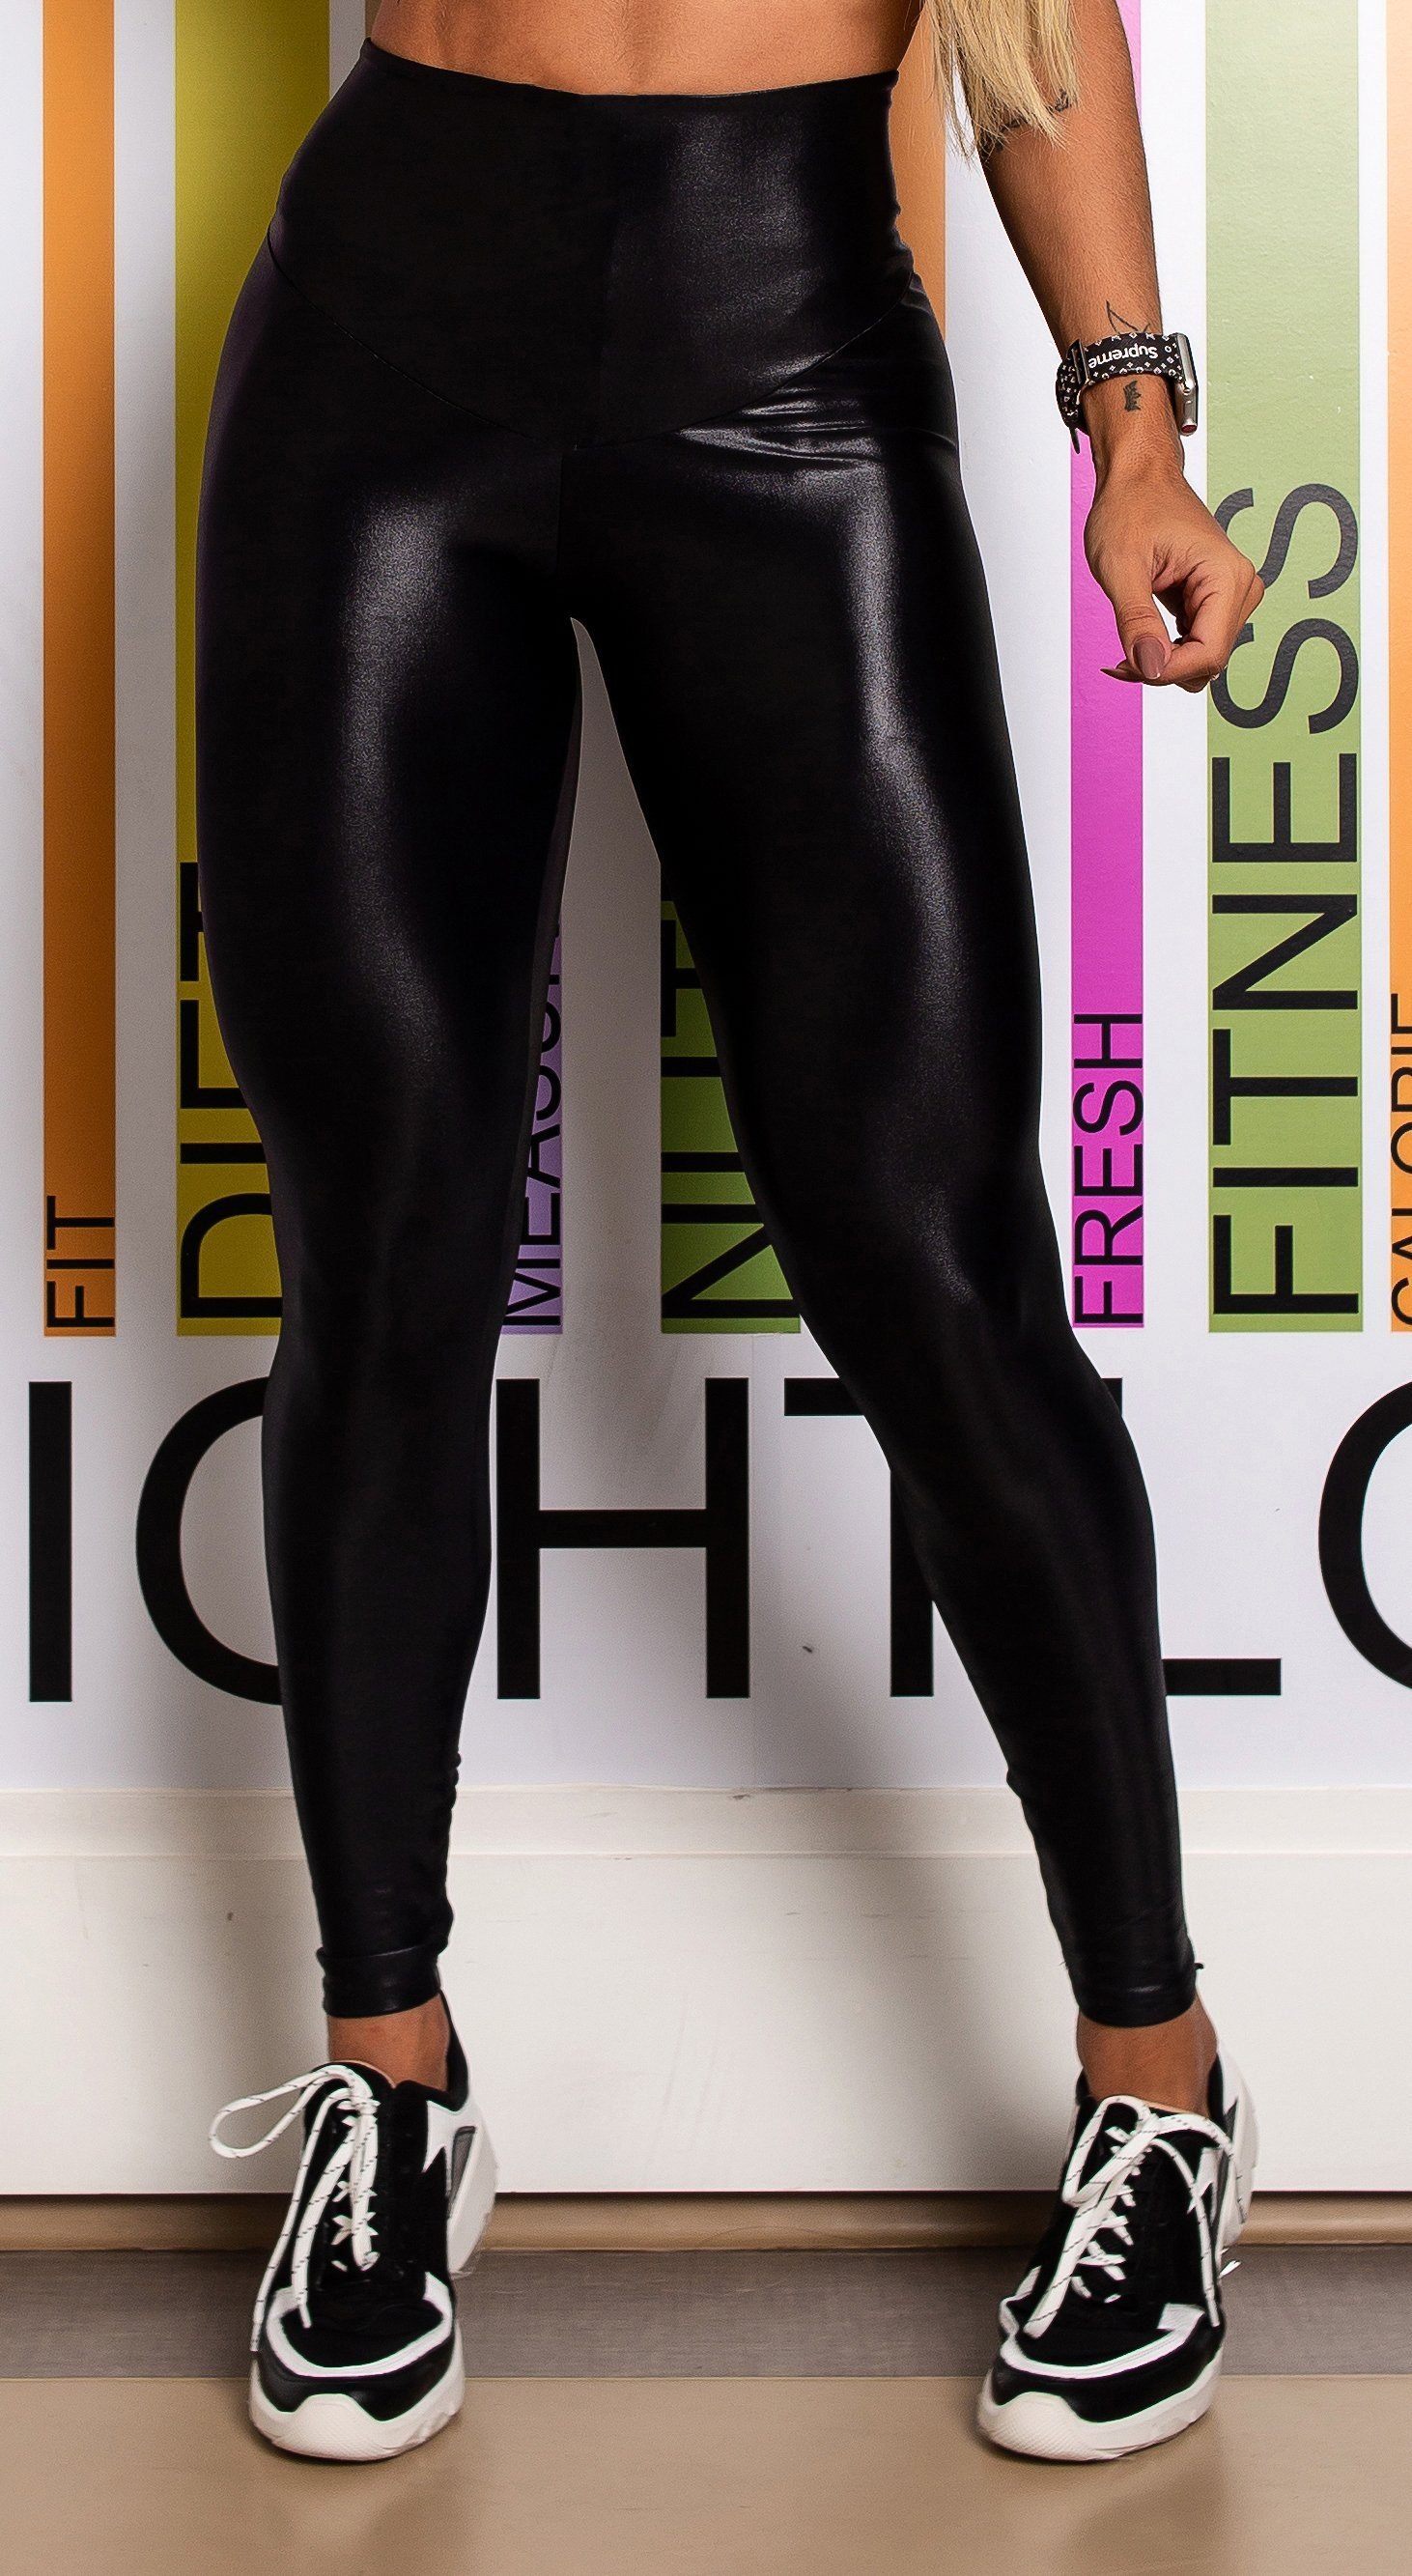 Brazilian Workout Legging - High Waist Scrunch Booty Cire Black